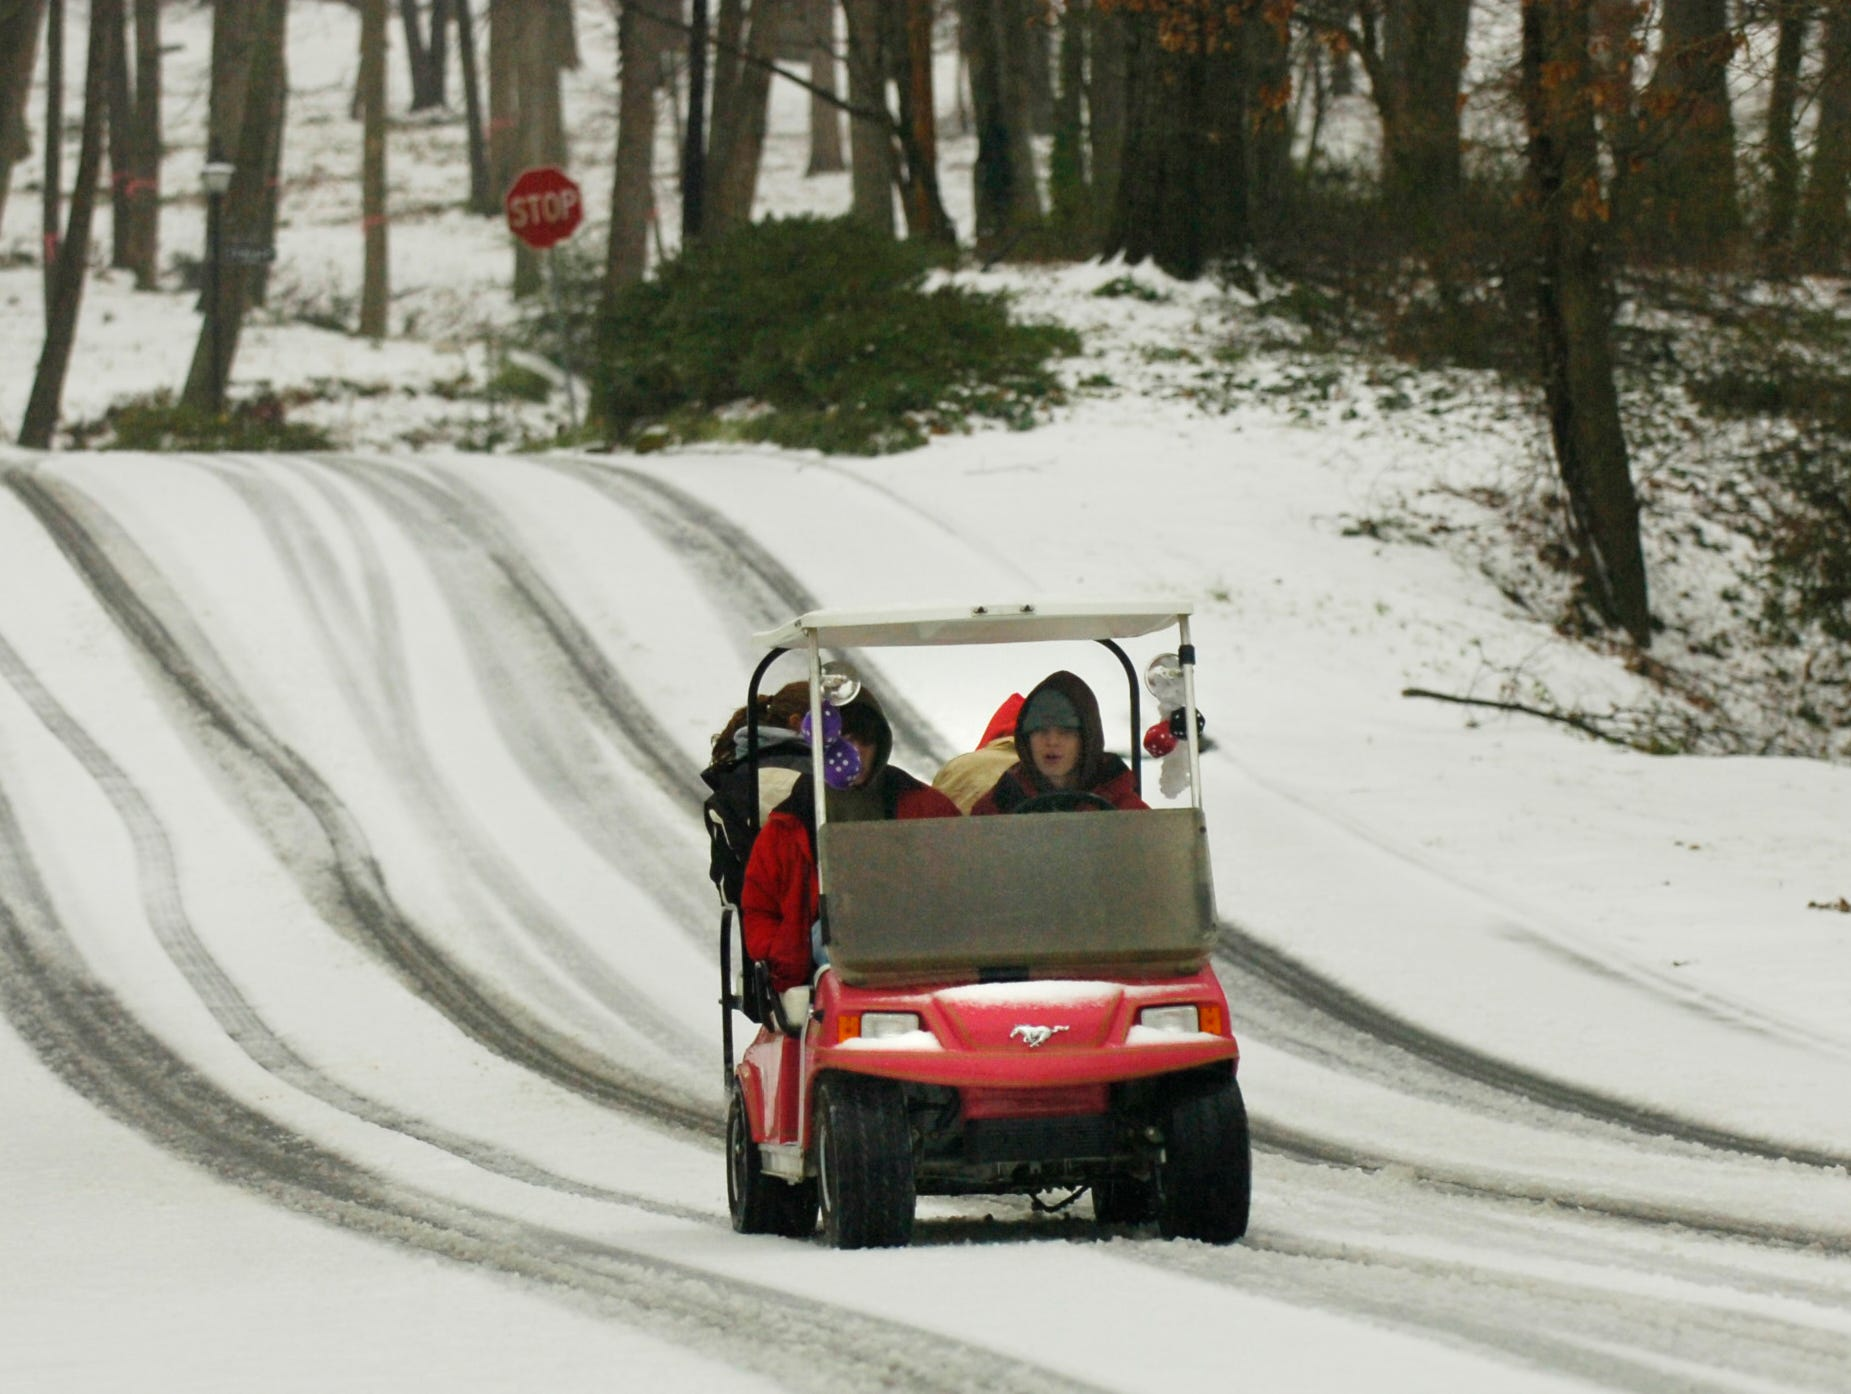 A golf cart turned into a snowmobile as it made its way up Botany Road in Greenville's  Botany Woods neighborhood early Thursday, February 1, 2007.